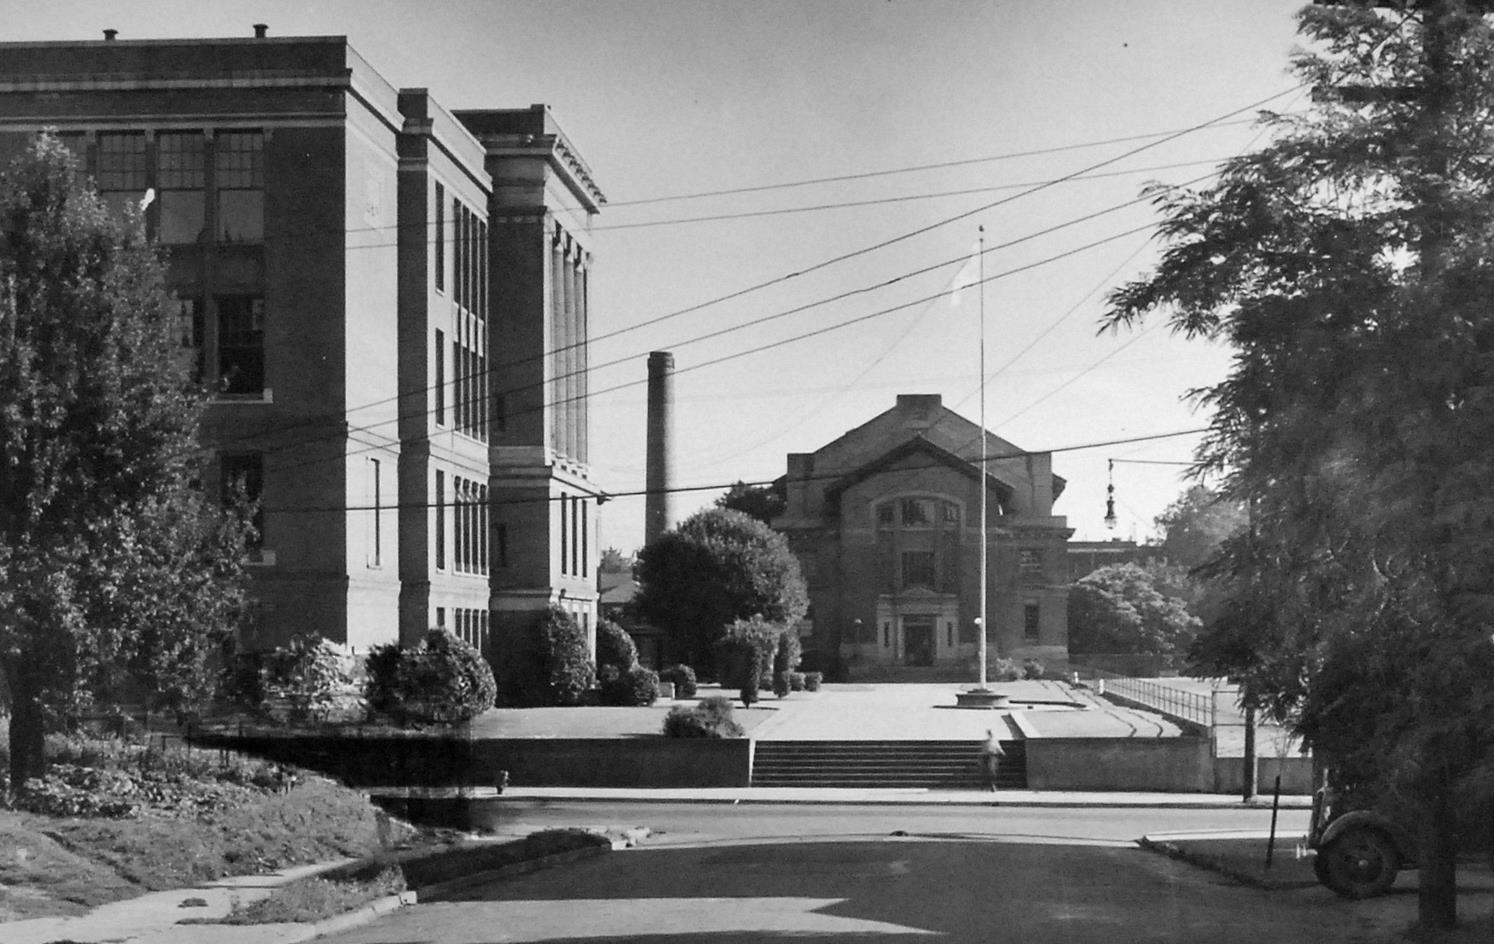 Campus in the 1930s.